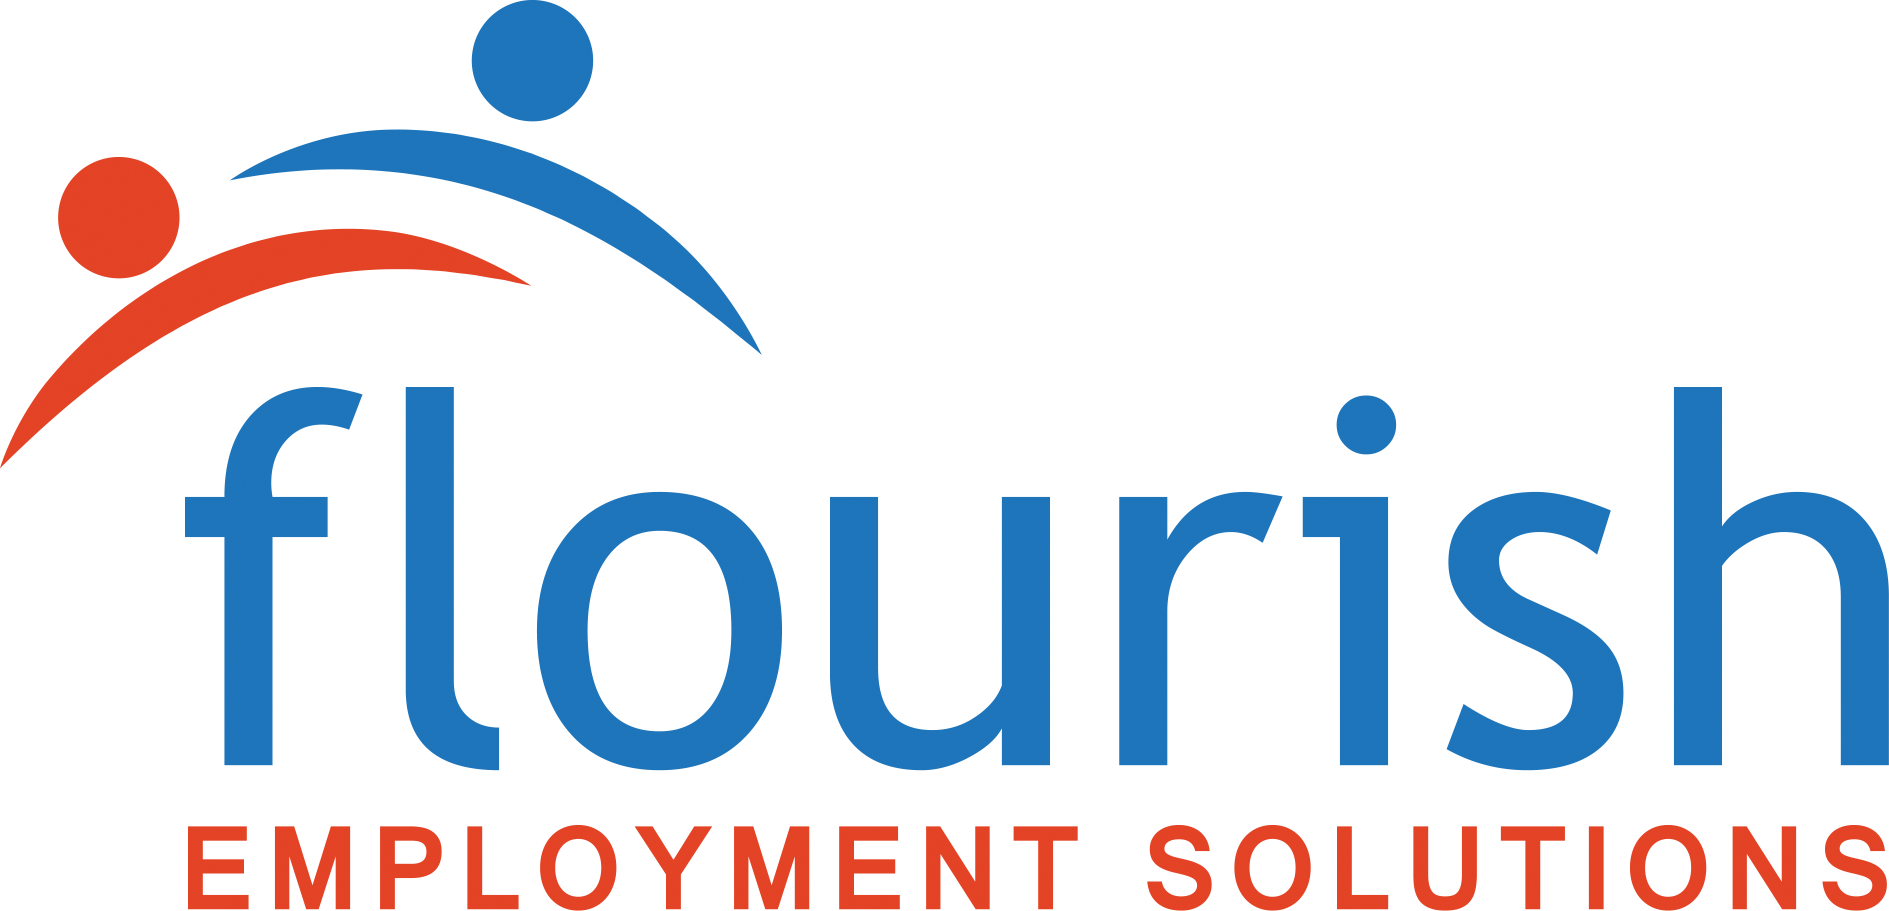 Flourish Employment Solution